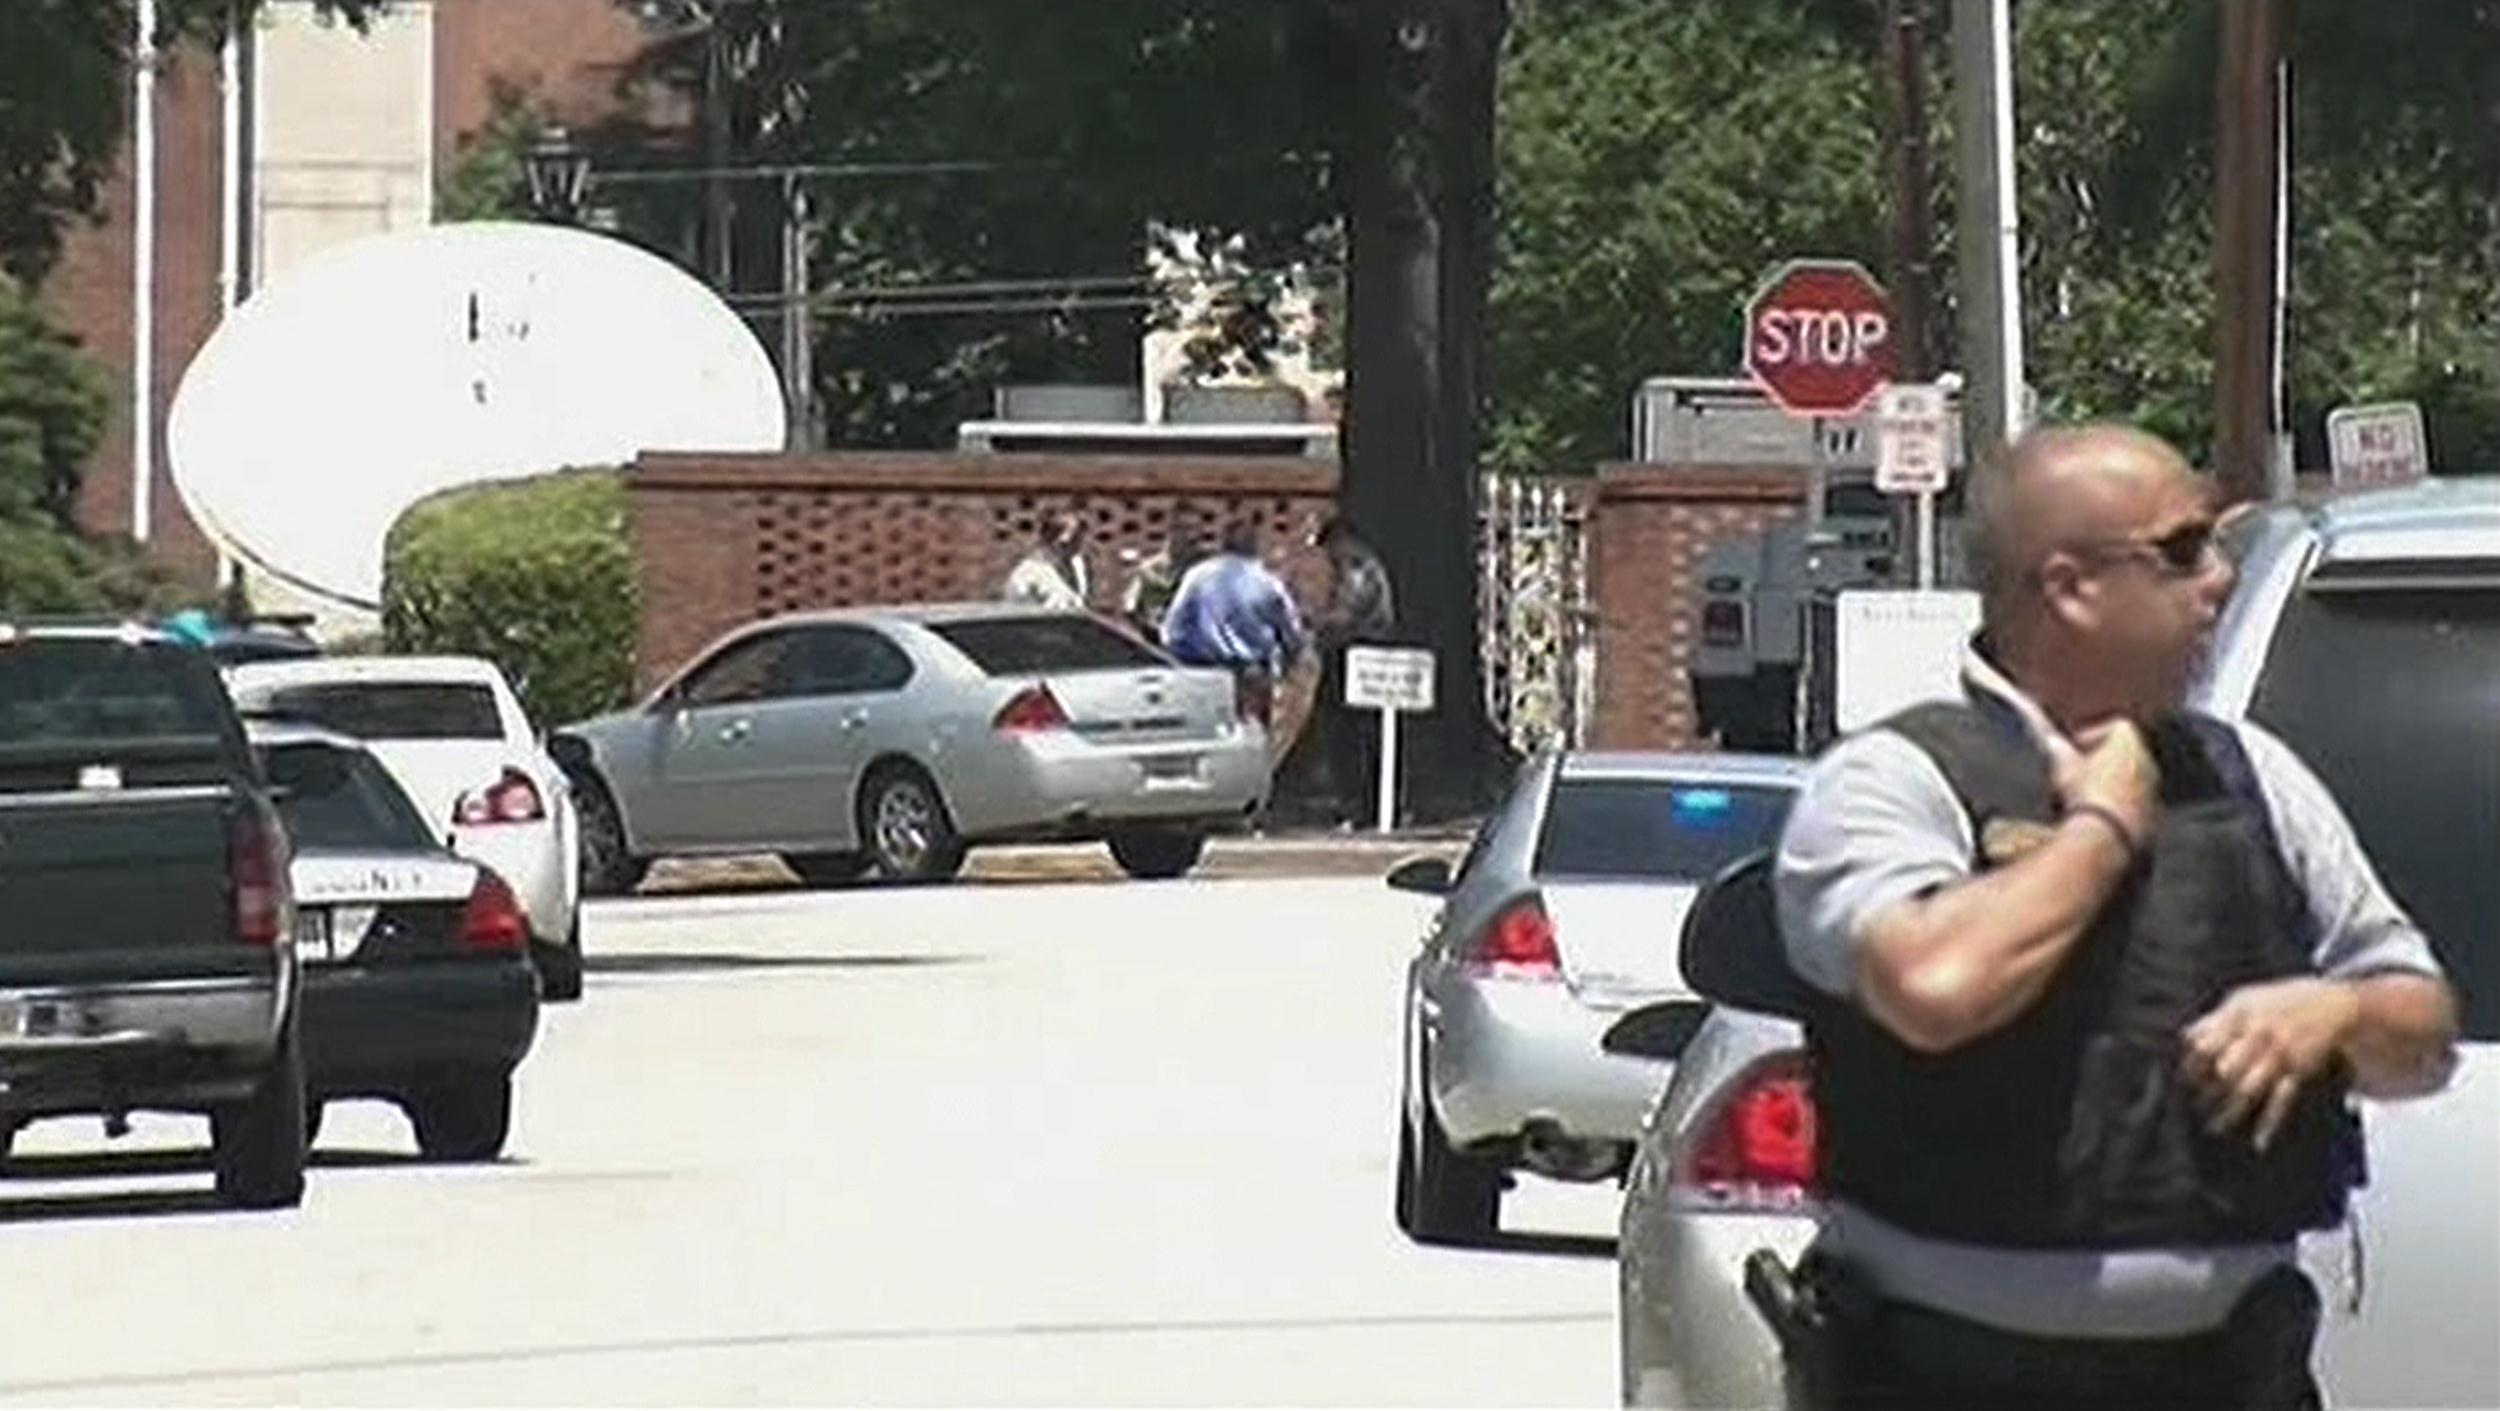 Image: Police stand near Paine College in Augusta, Ga., Monday.